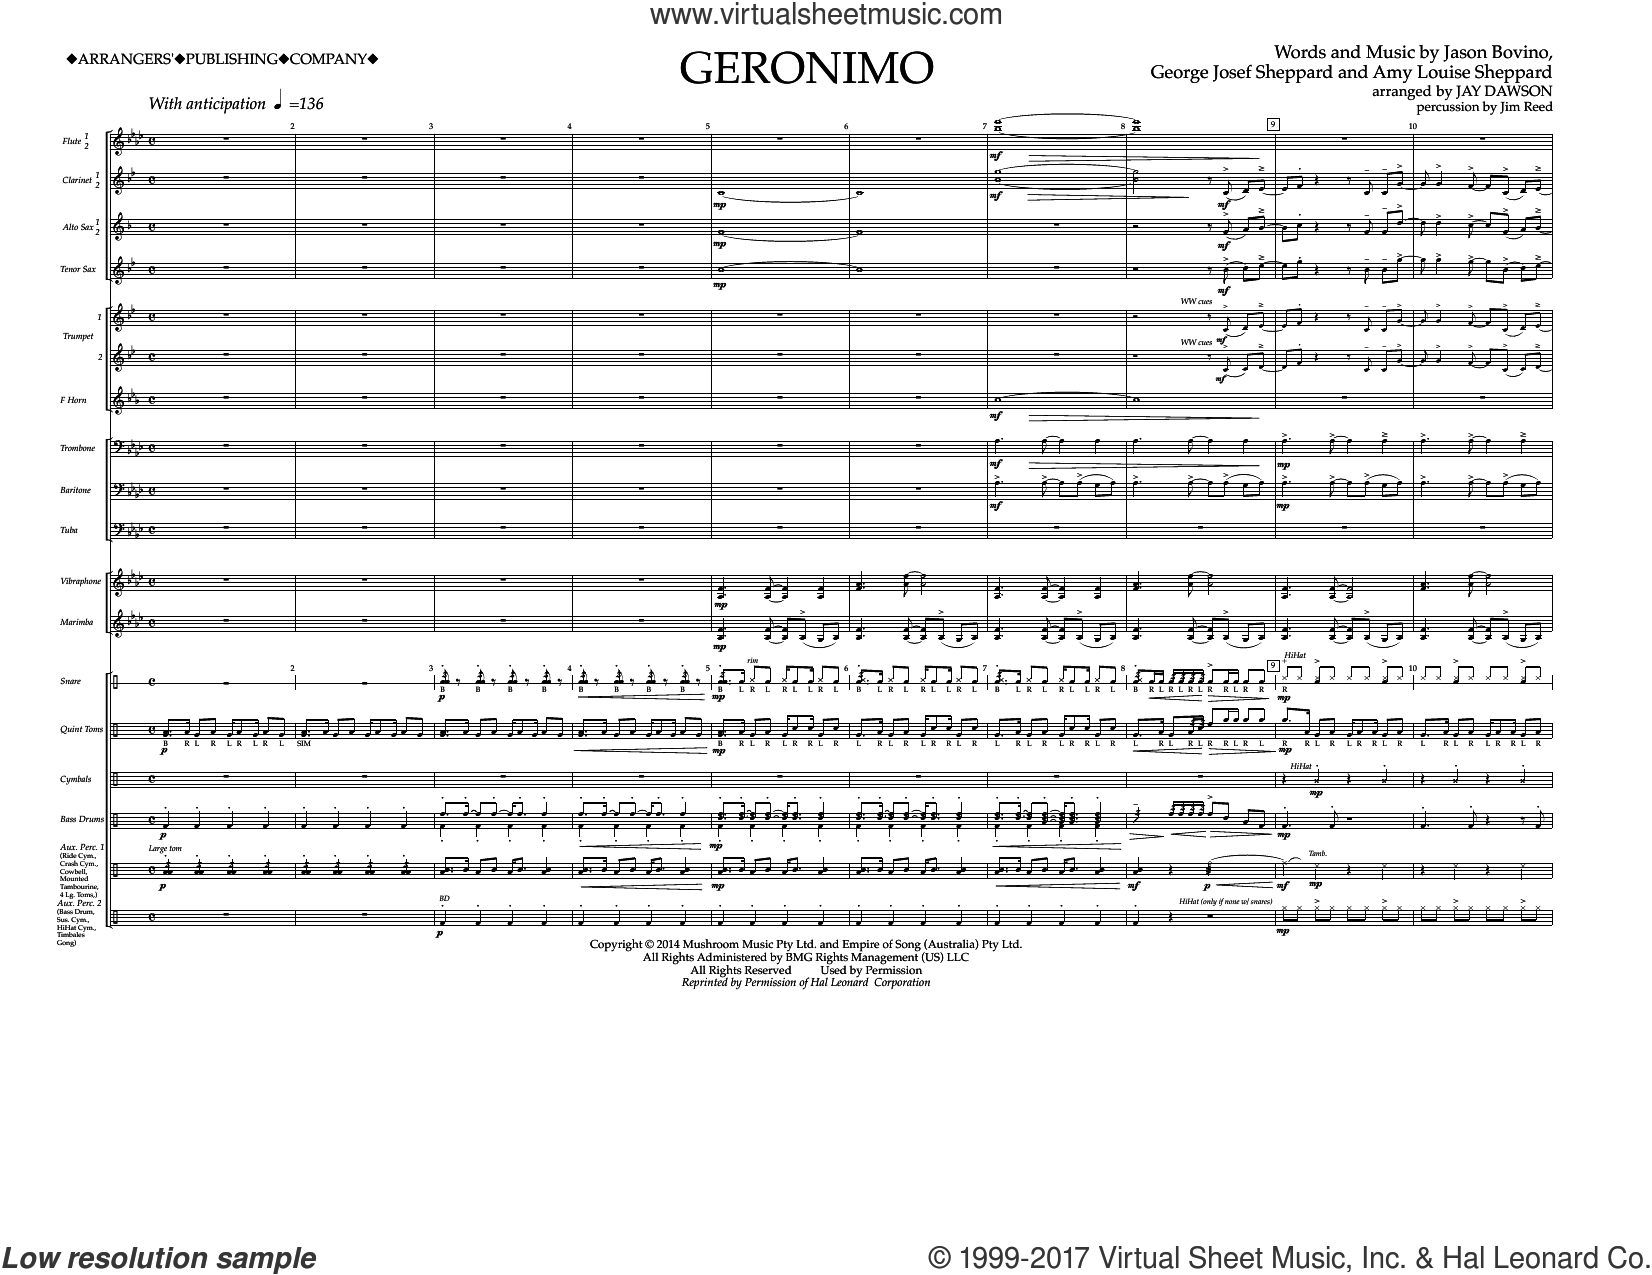 Geronimo (COMPLETE) sheet music for marching band by Jay Dawson, Amy Louise Sheppard, George Josef Sheppard, Jason Bovino and Sheppard, intermediate skill level